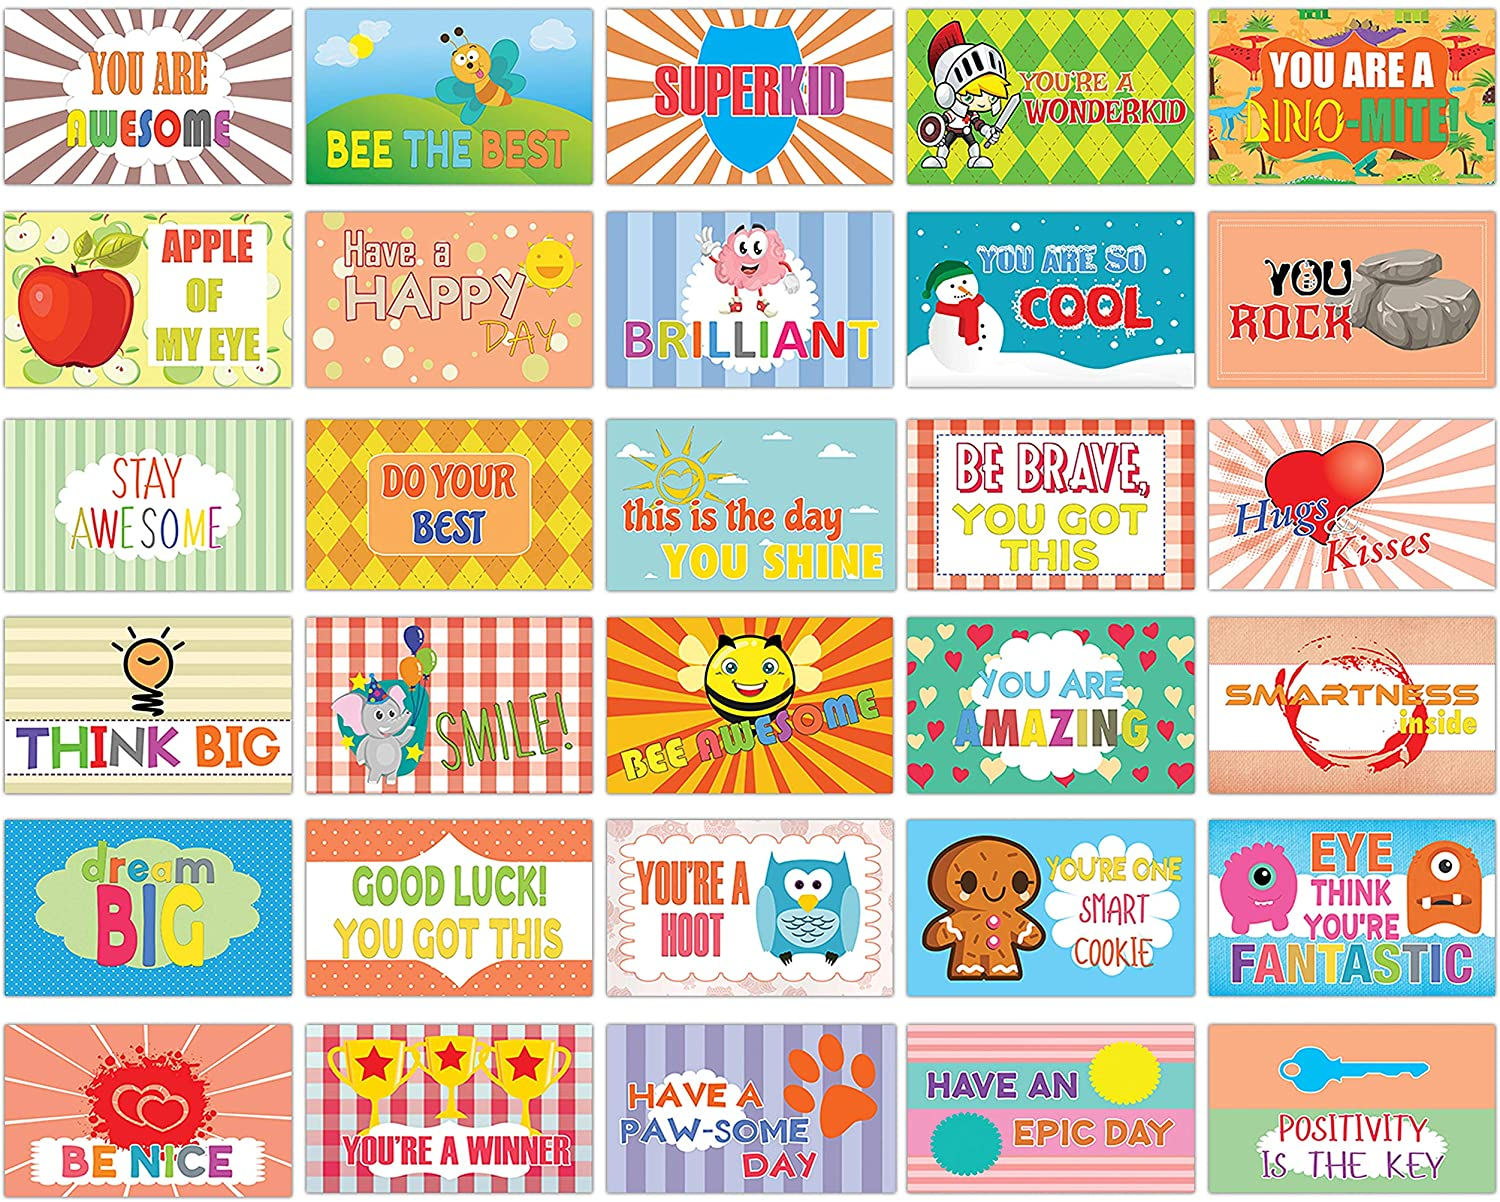 Creanoso Sea and Land Funny Jokes Flash Cards (120-Pack) – Fun Learning Mini Cards for Boys and Girls – Cool Gift Token Giveaways for Kids – Awesome Classroom Teaching Tool – School Rewards Incentives